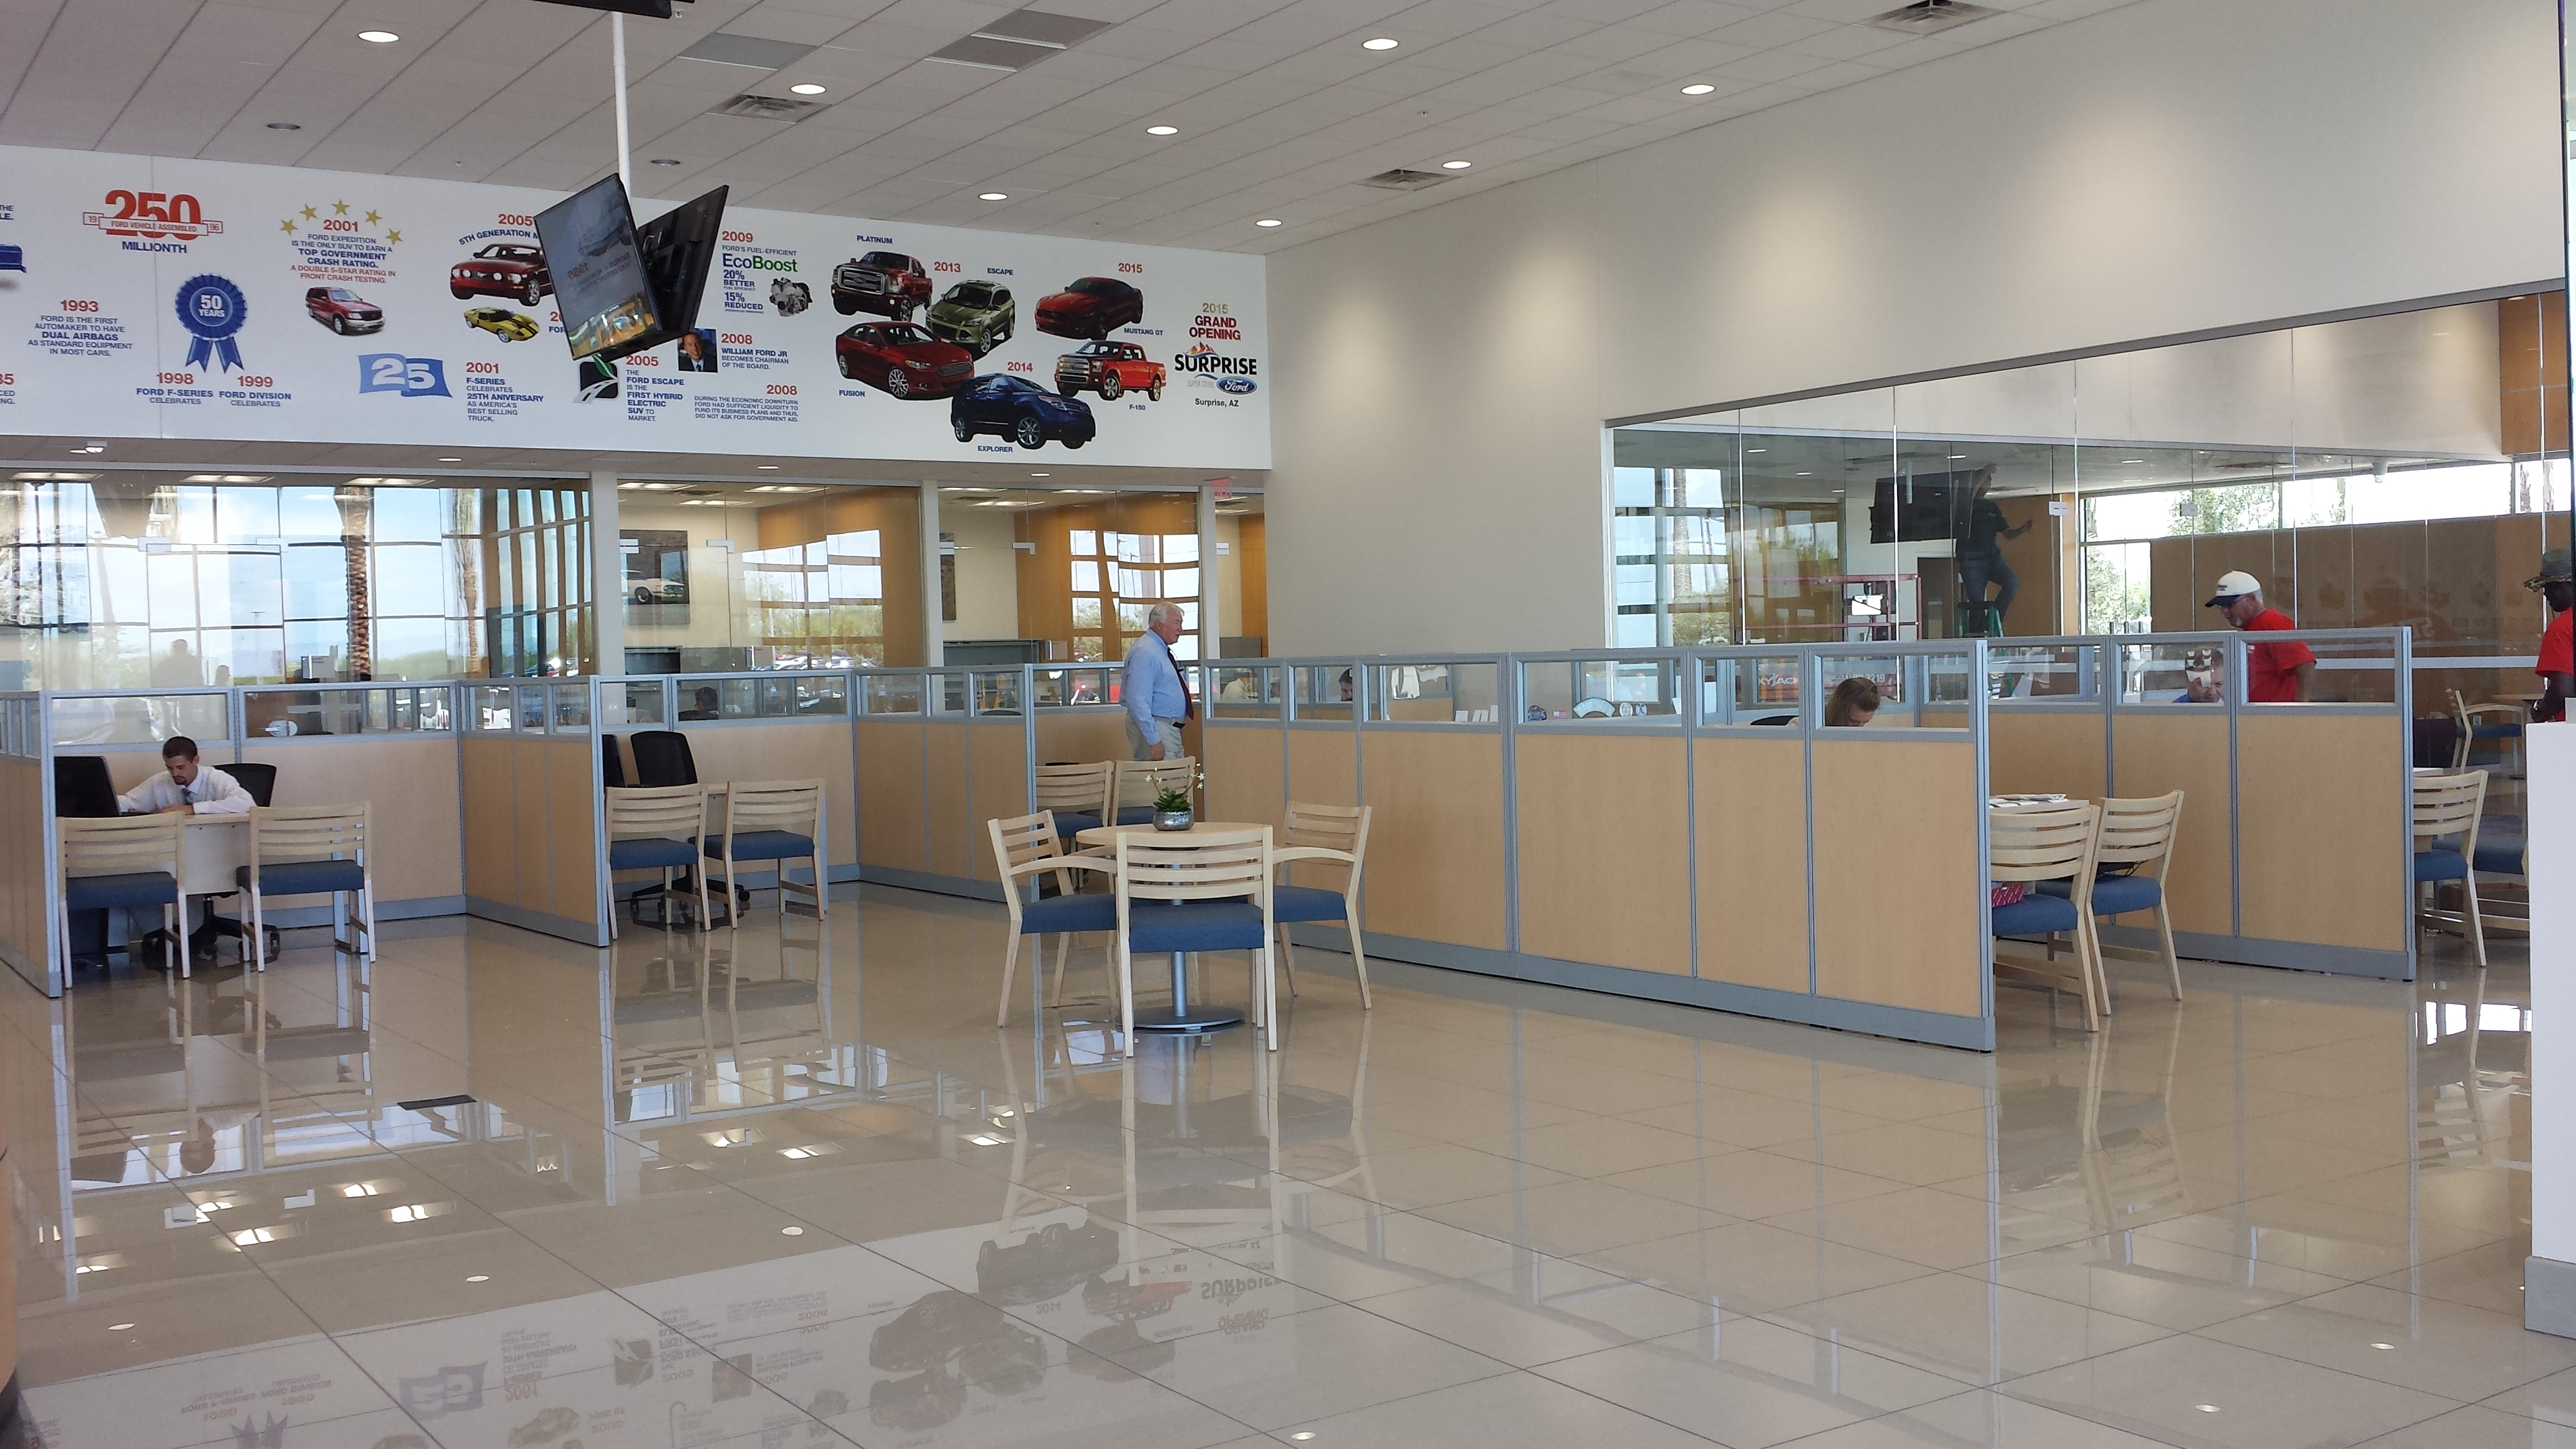 View Photos From Surprise Ford In Az Furnished By Evos